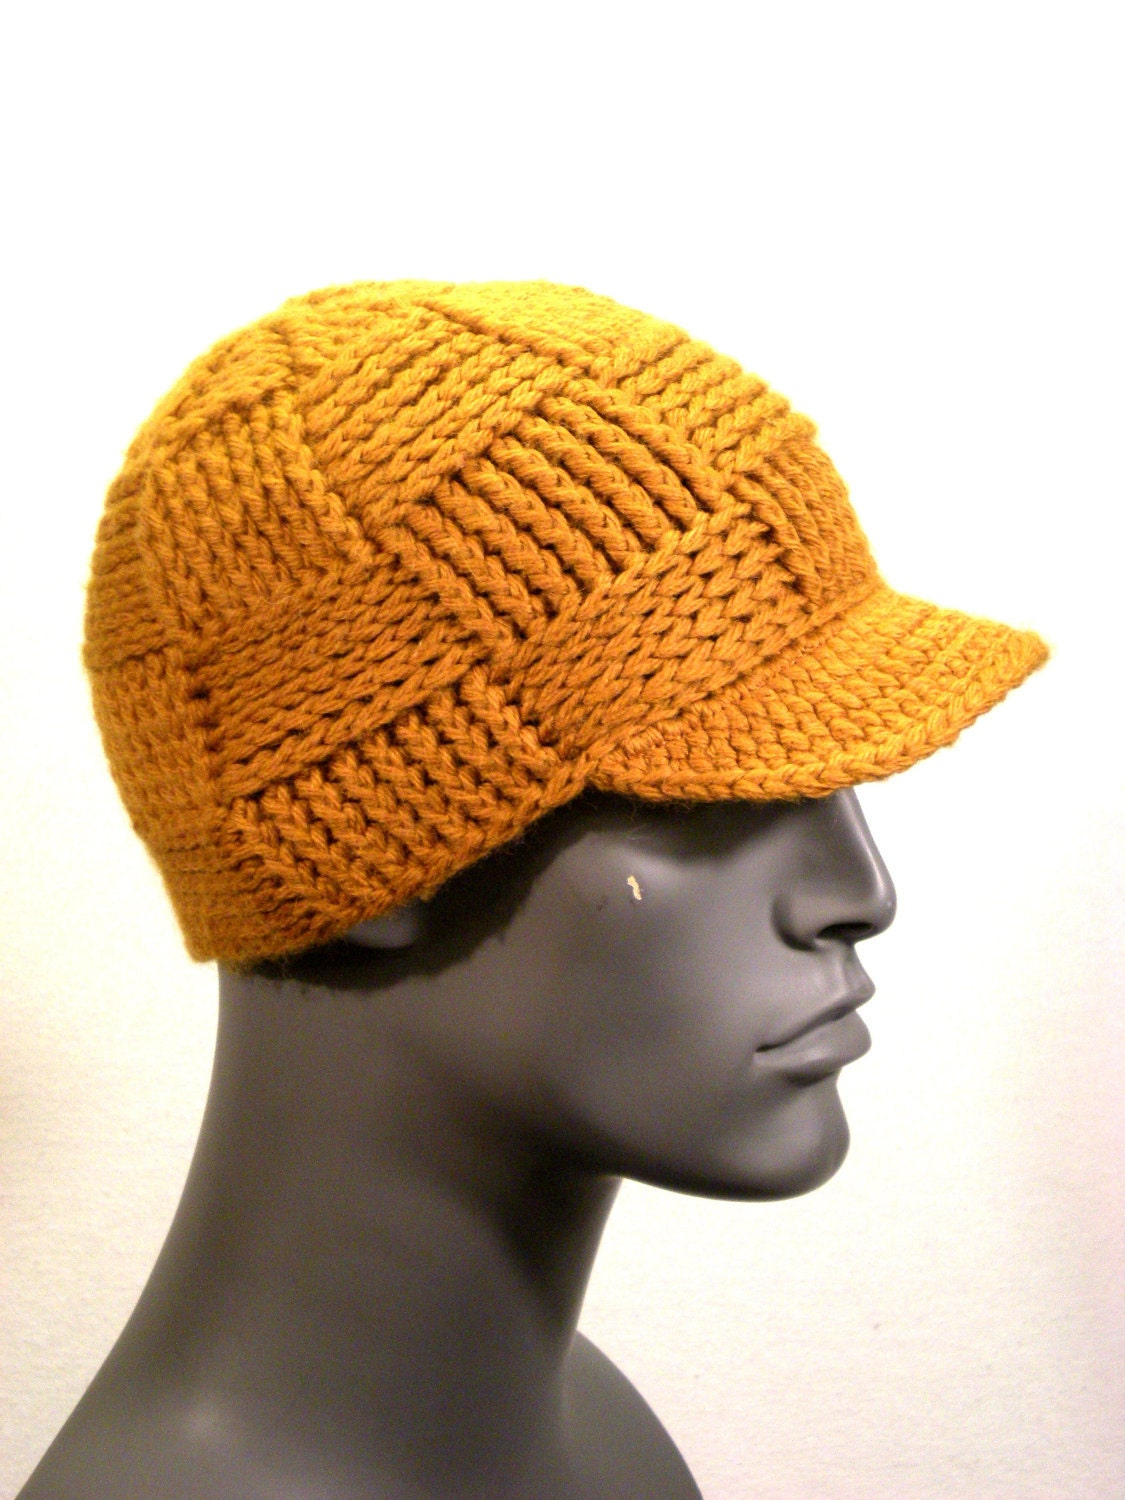 SALE - The Weaver Beanie with Bill - Medium - Wool - Wheat Color